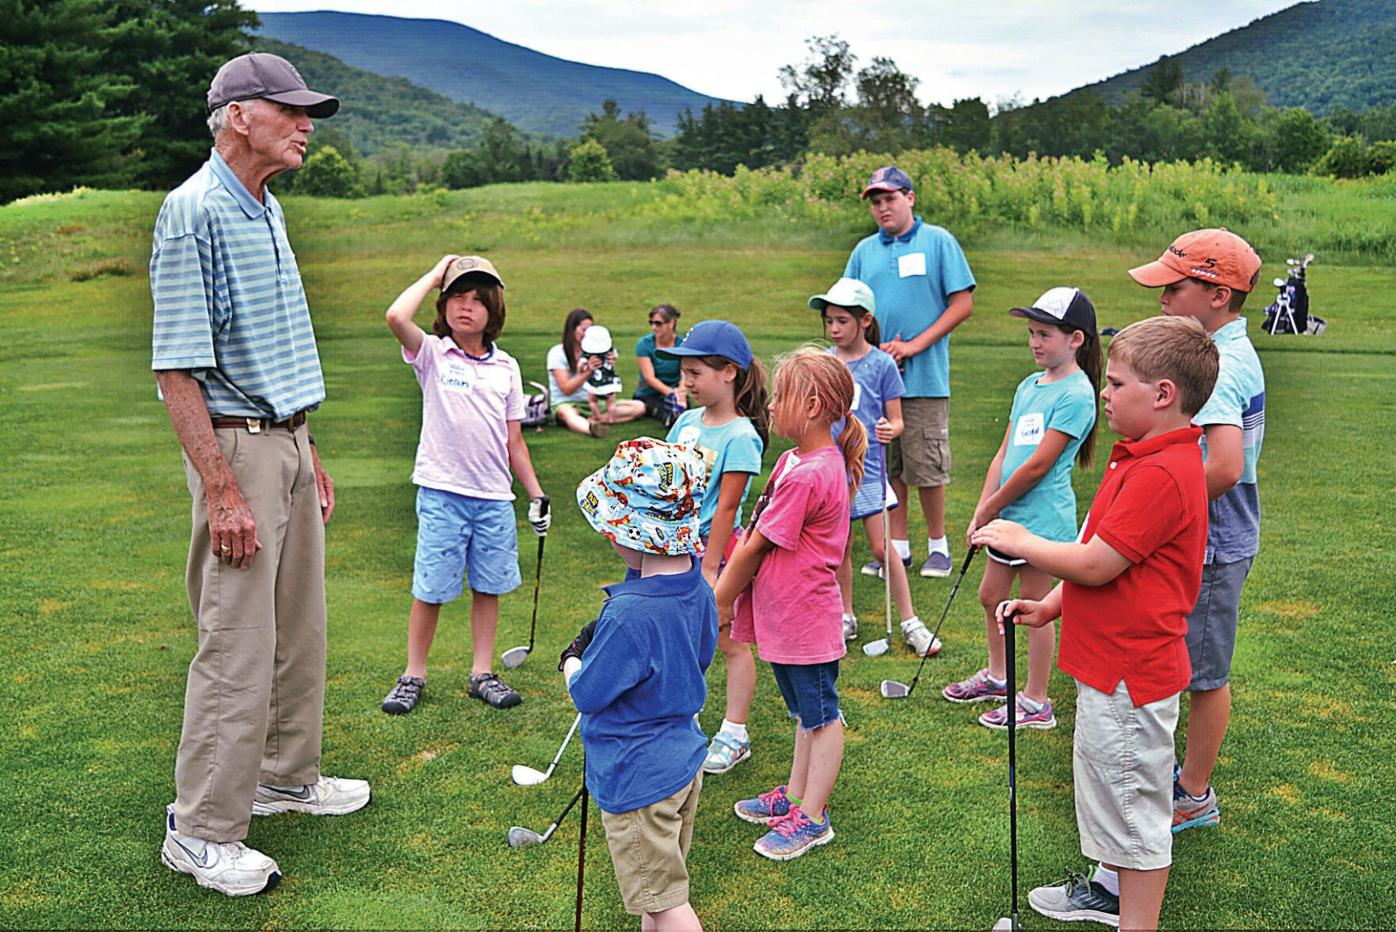 Tee to Green: Peter French still teaching the sport he loves